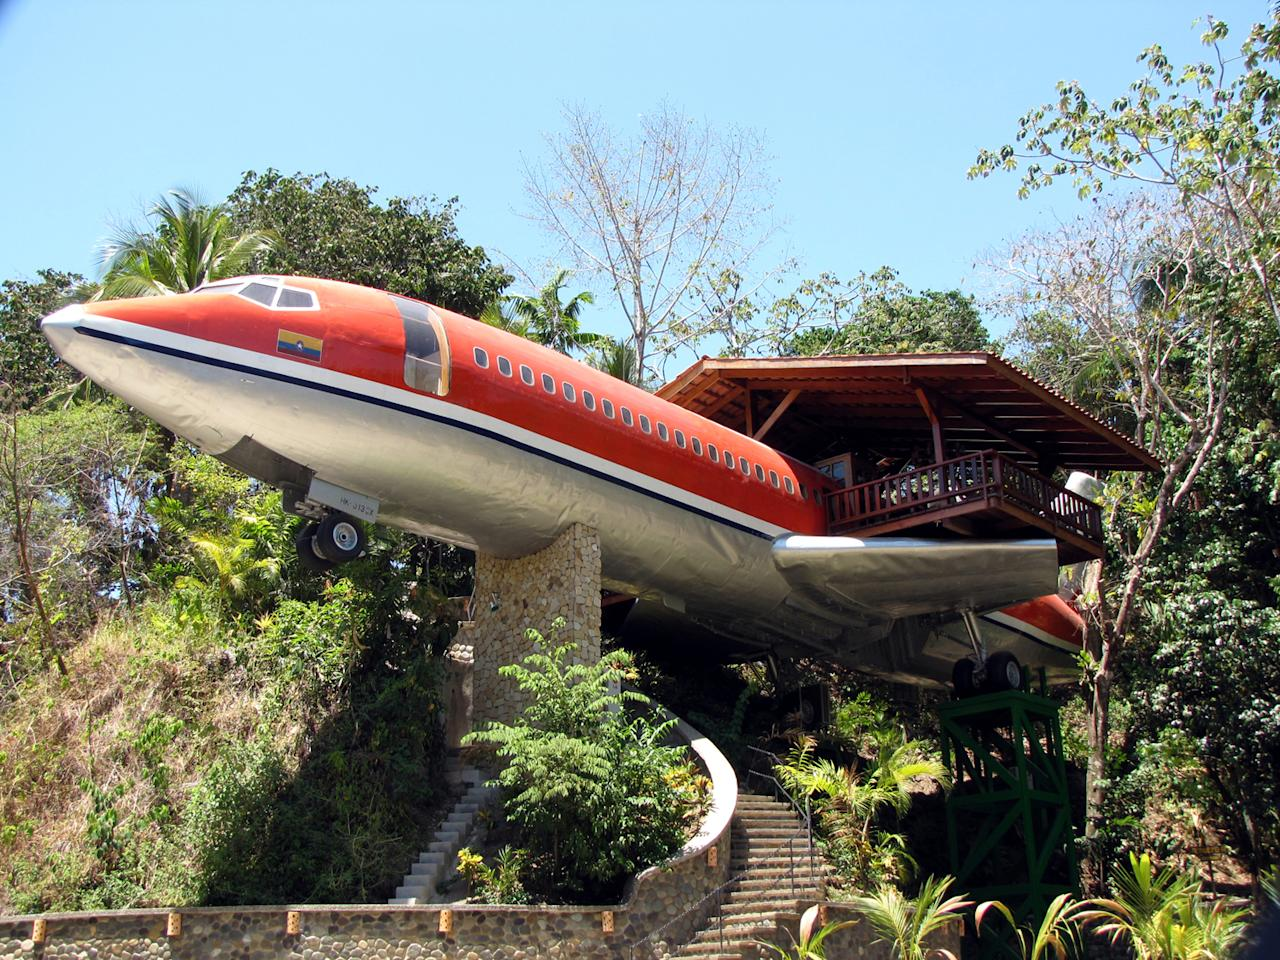 <p>The sky's the limit for this hotel, which is made out of a 1965 Boeing 727. In its former life the plane flew passengers to South Africa and Colombia, but now it's been converted into a two-room suite that juts out from the jungle canopy and features air conditioned ensuites and an outdoor terrace with sea views. From £225 per night. [Photo: Costa Verde] </p>